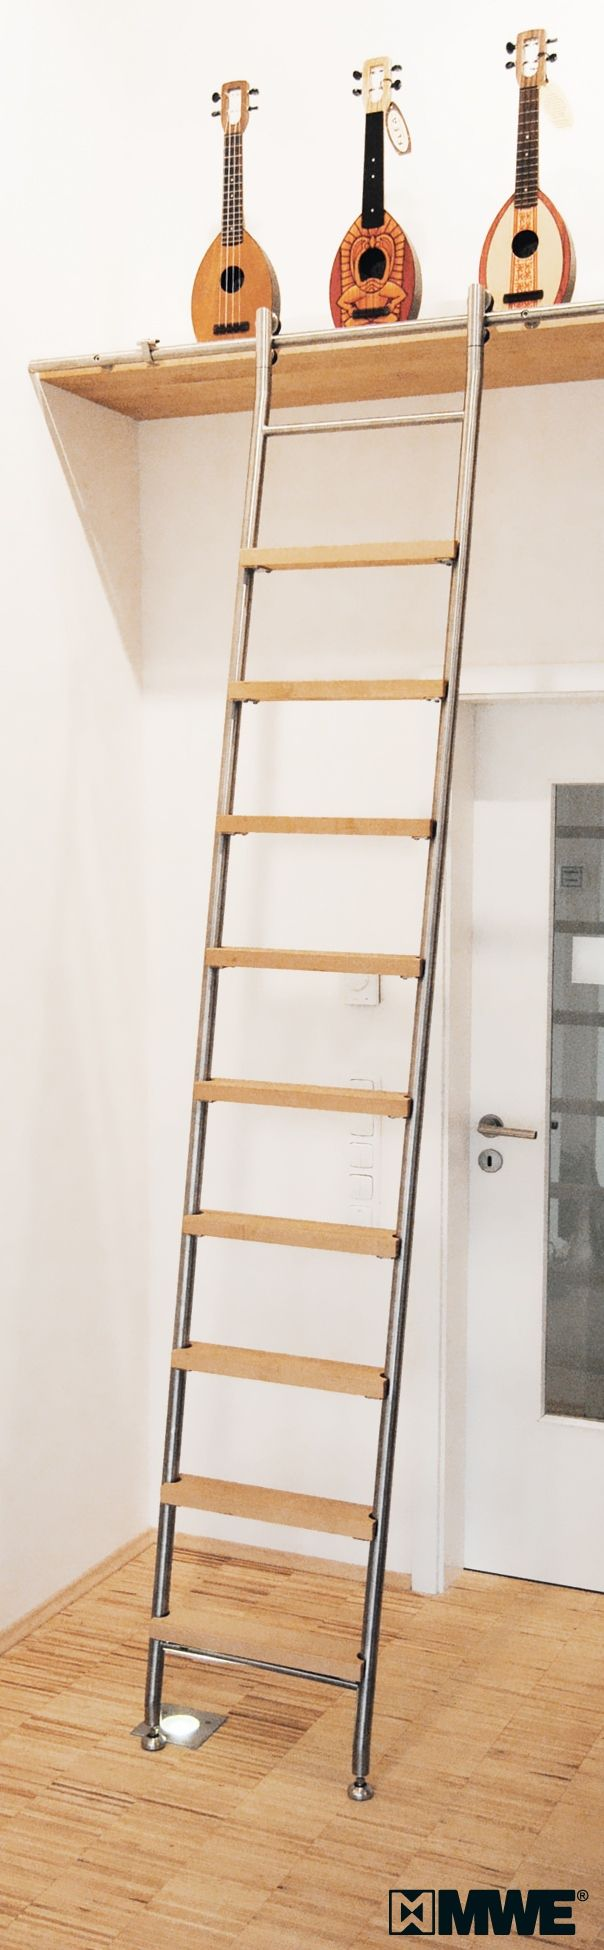 Delightful VARIO Library Ladder Manufactured By MWE / Designed By Mario Wille /  Www.mwe.